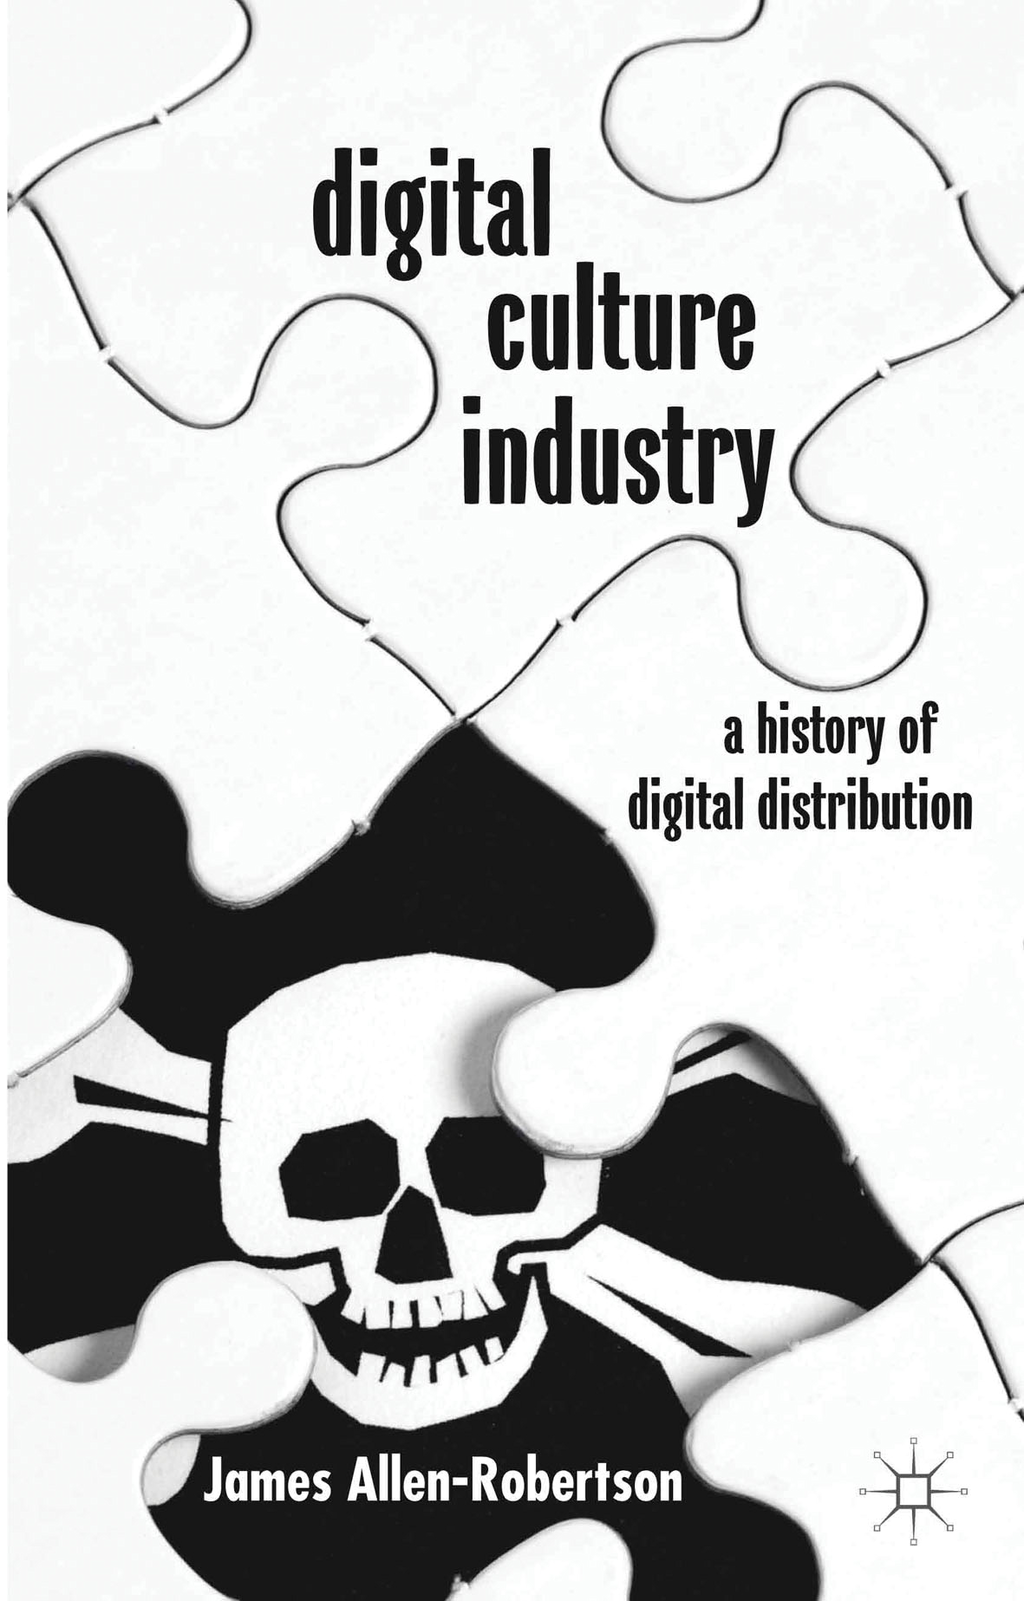 Digital Culture Industry A History of Digital Distribution